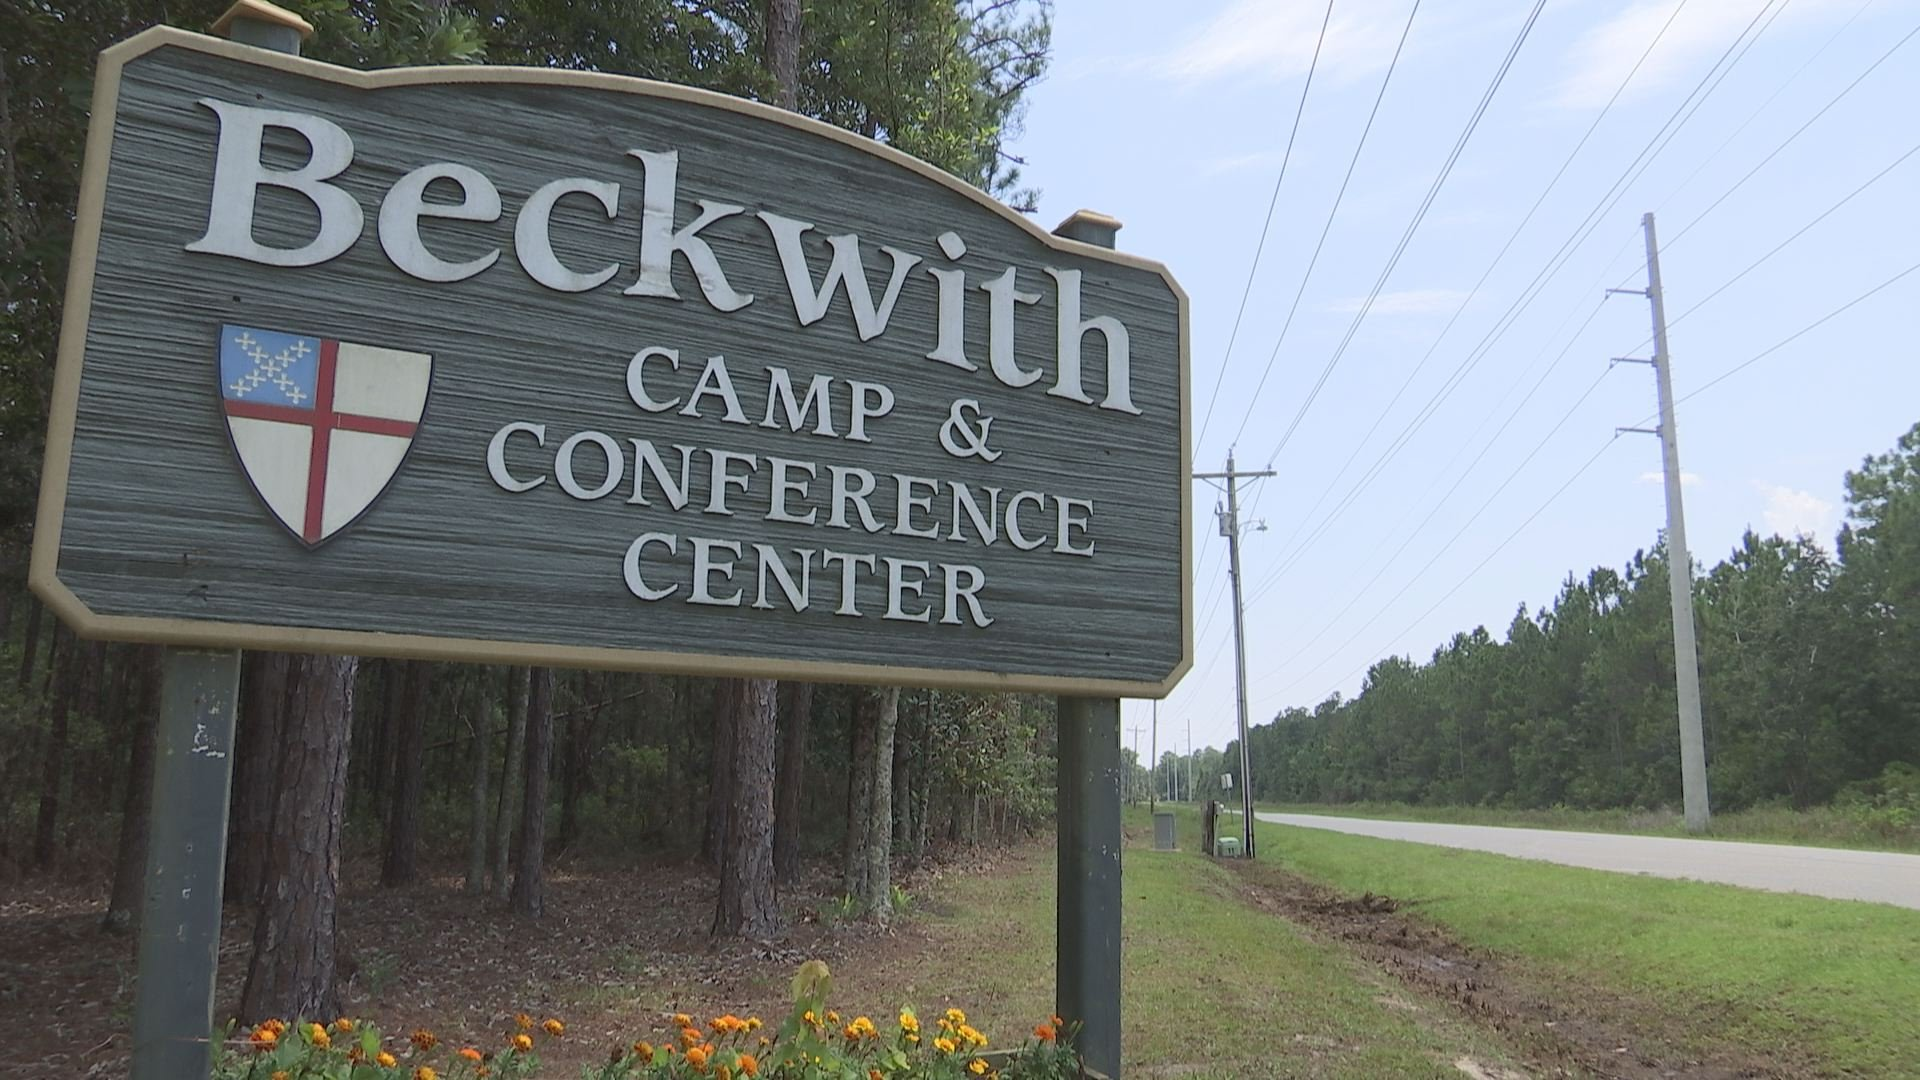 Camp Beckwith is located in southern Fairhope, on the coast of Weeks Bay. (Photo: Rodney Rocker, WALA FOX10 News)